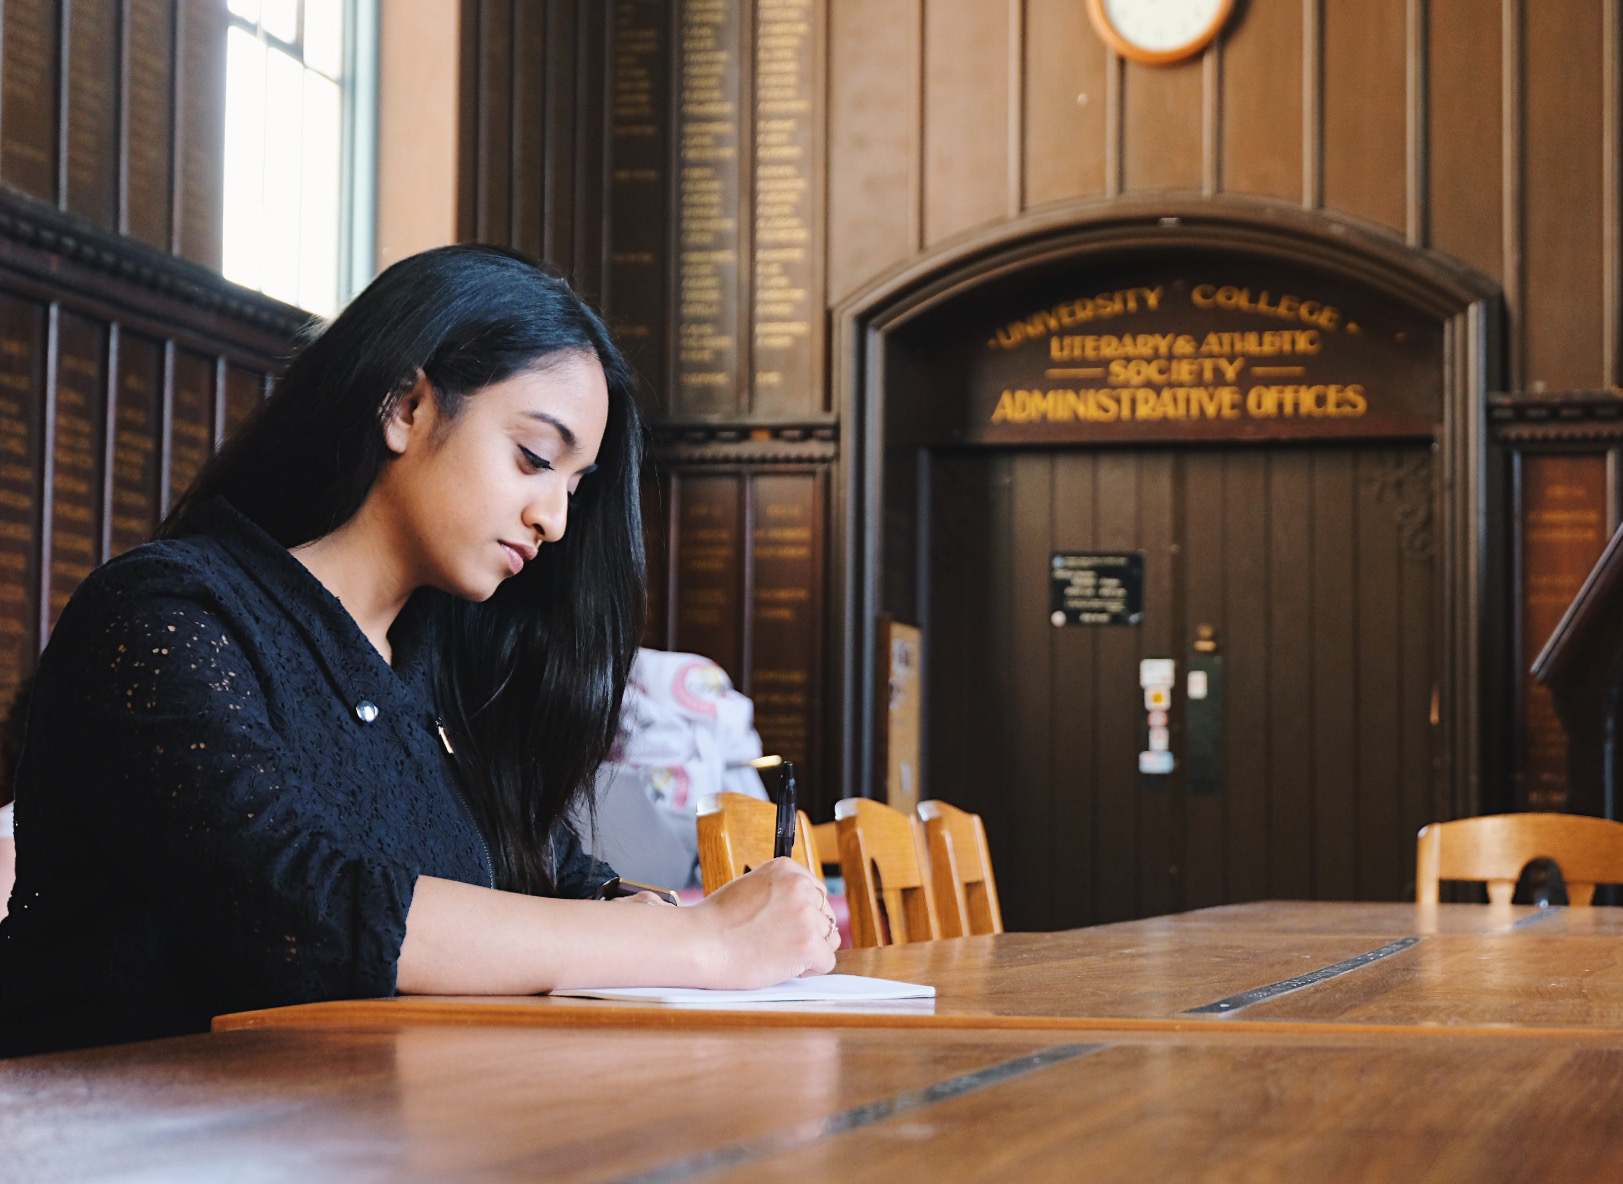 A student writing in a U of T Library.